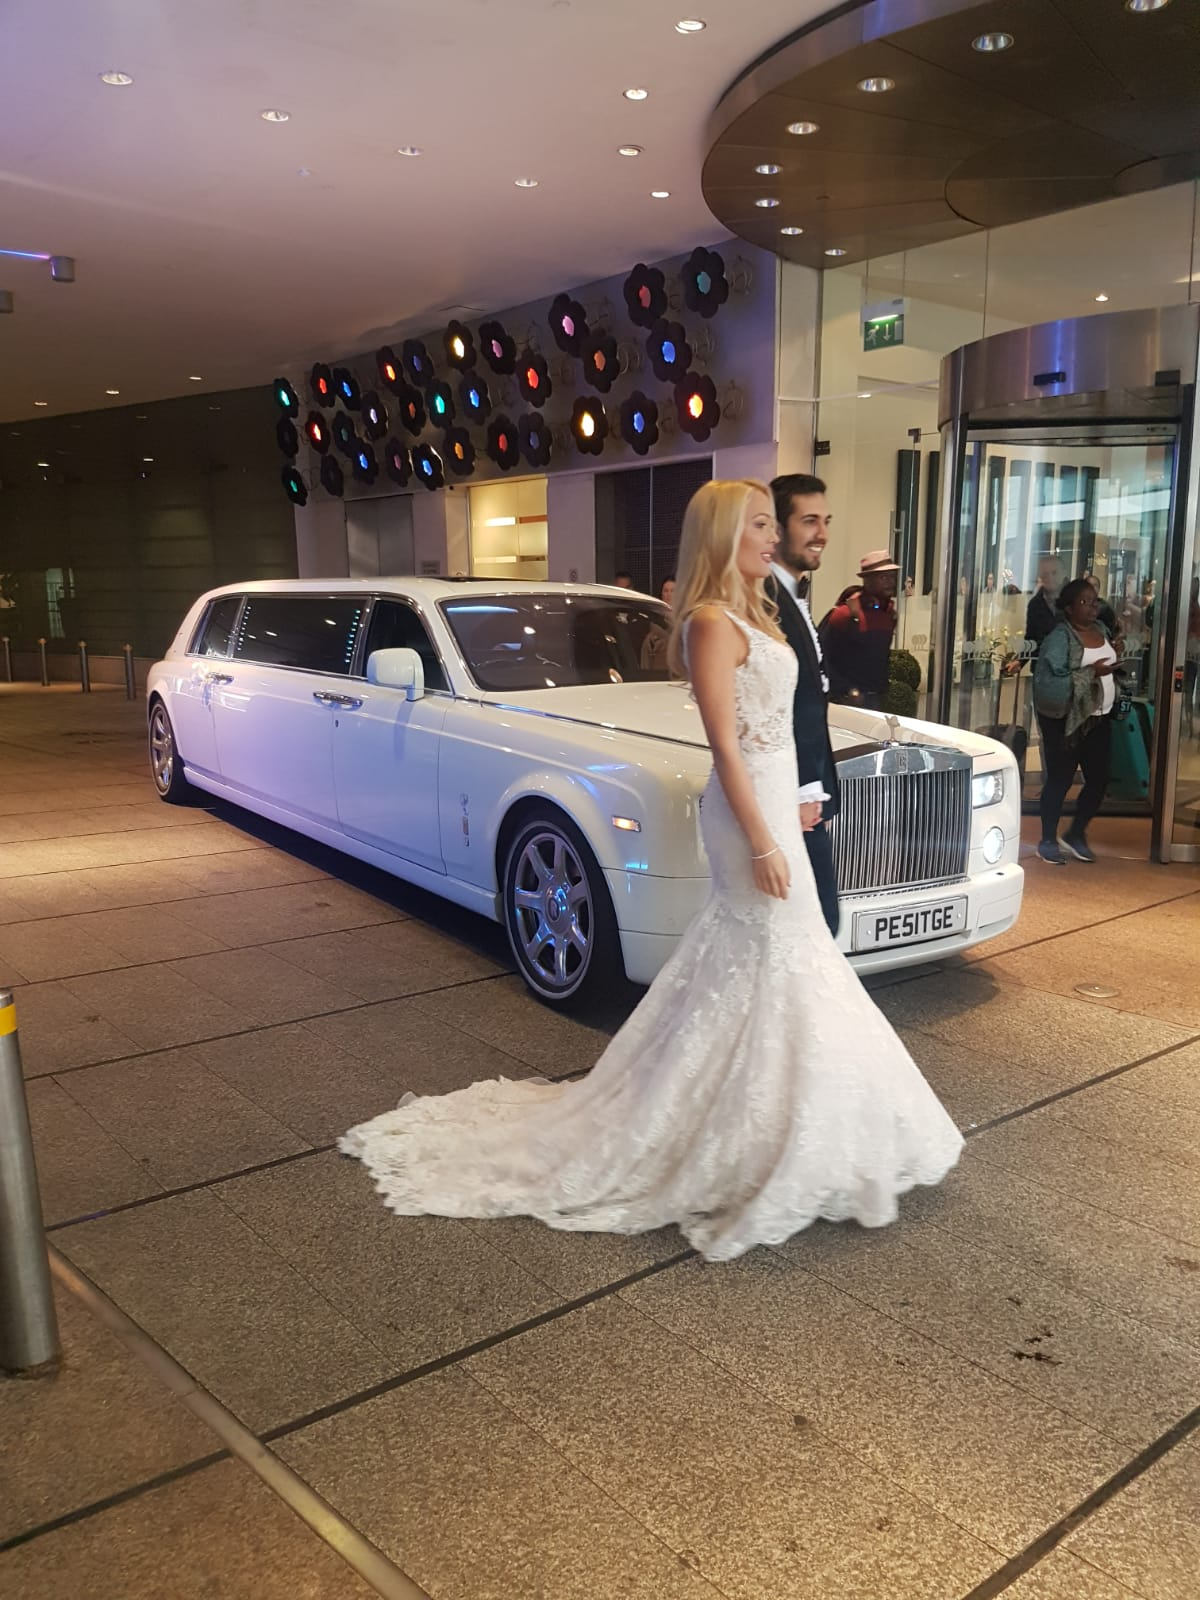 Xclusive limos and wedding cars | Bark Profile and Reviews